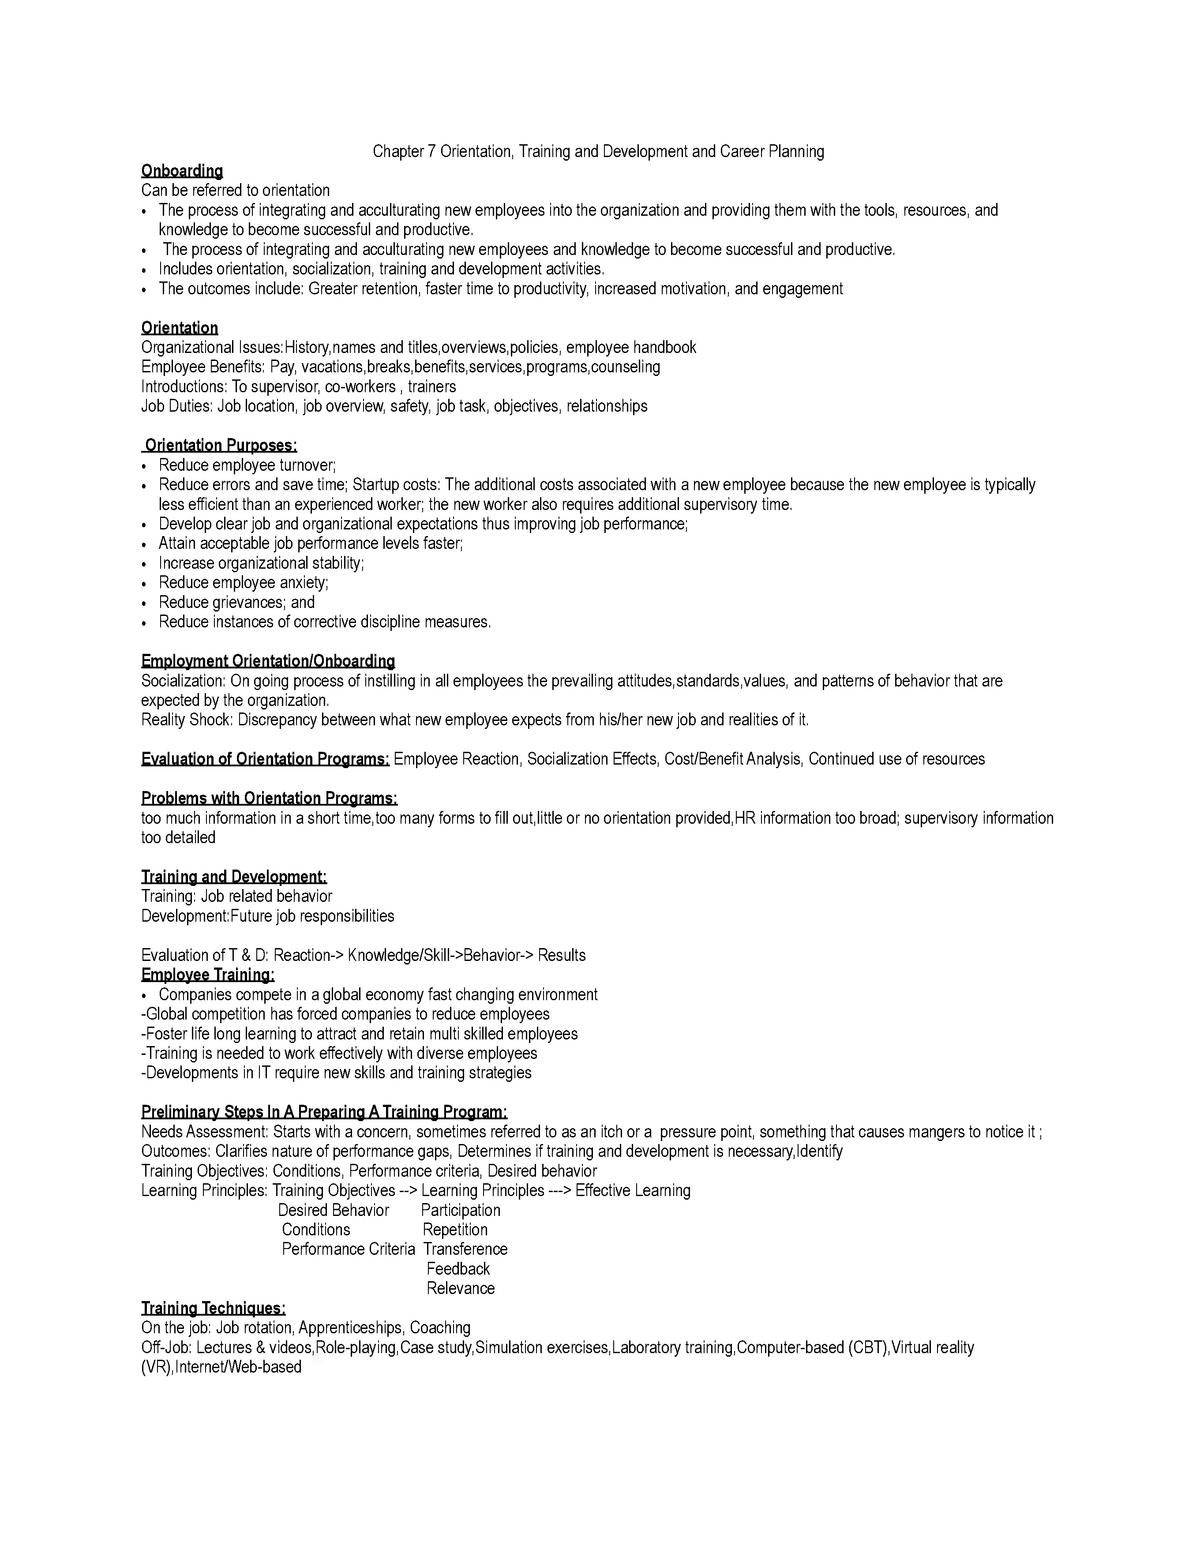 MHR 523 After Midterm - Summary Human Resources Management